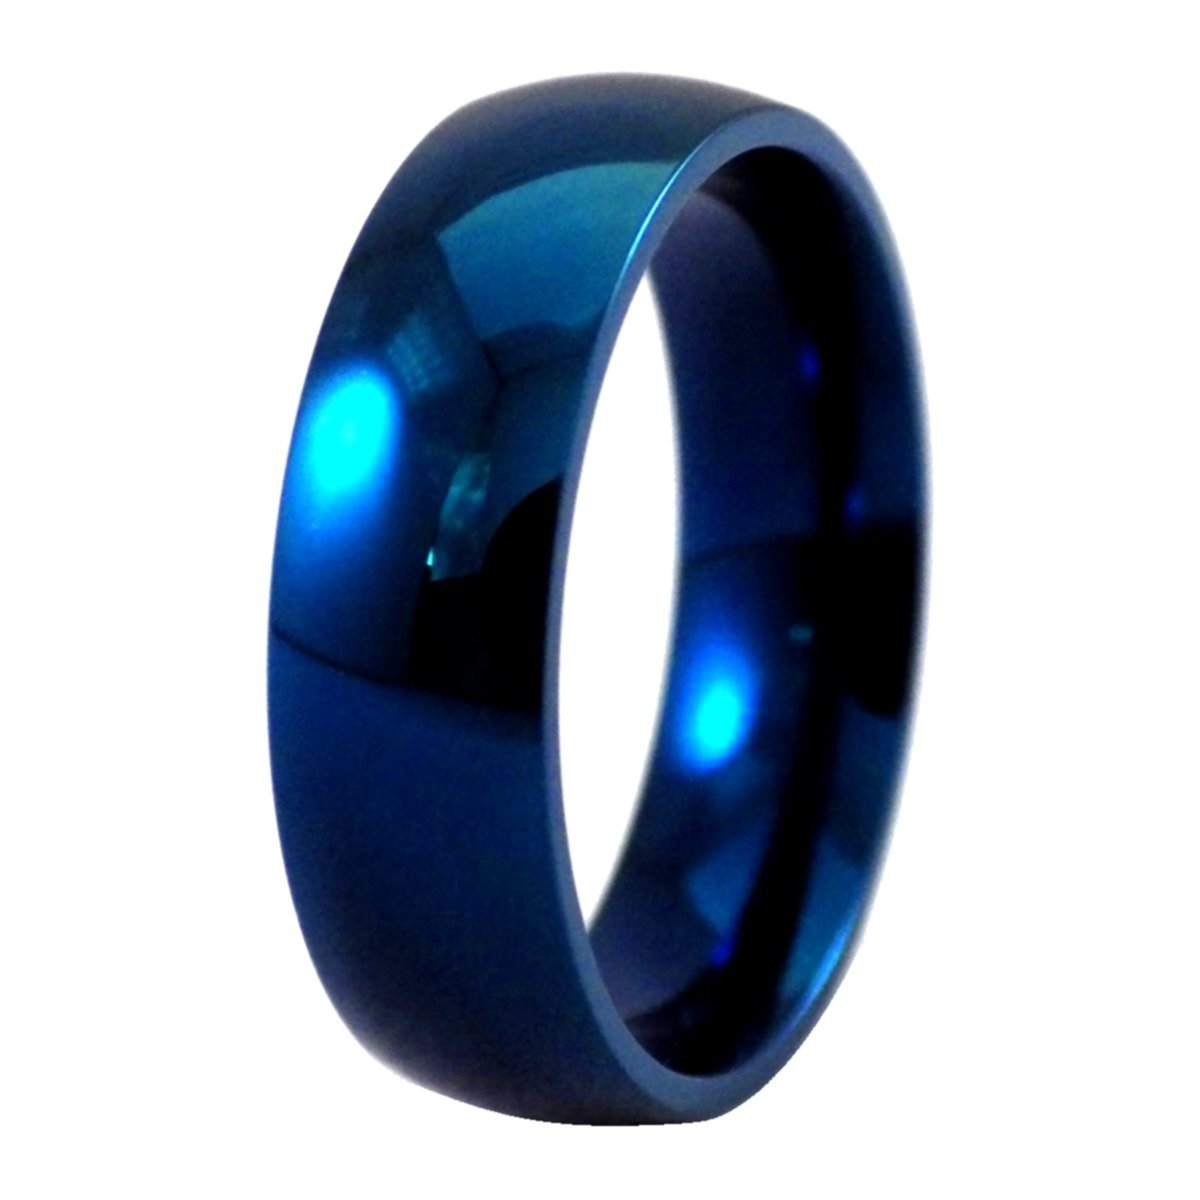 Fantasy Forge Jewelry Electric Blue Stainless Steel Ring Simple Wedding Band Size 16